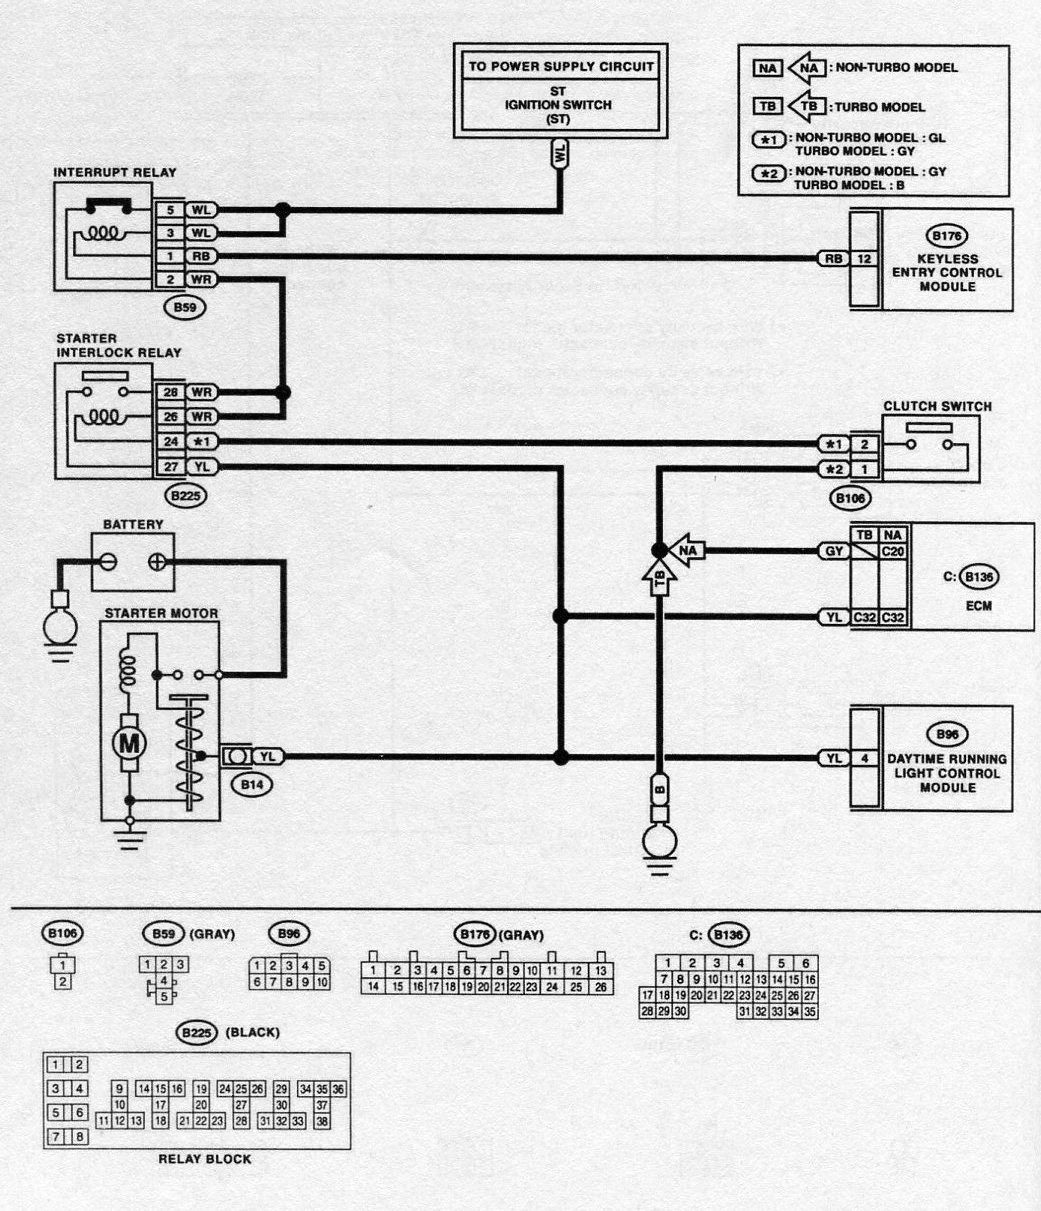 hight resolution of i would start with circumventing the interrupt relay in the diagram first unplug the relay